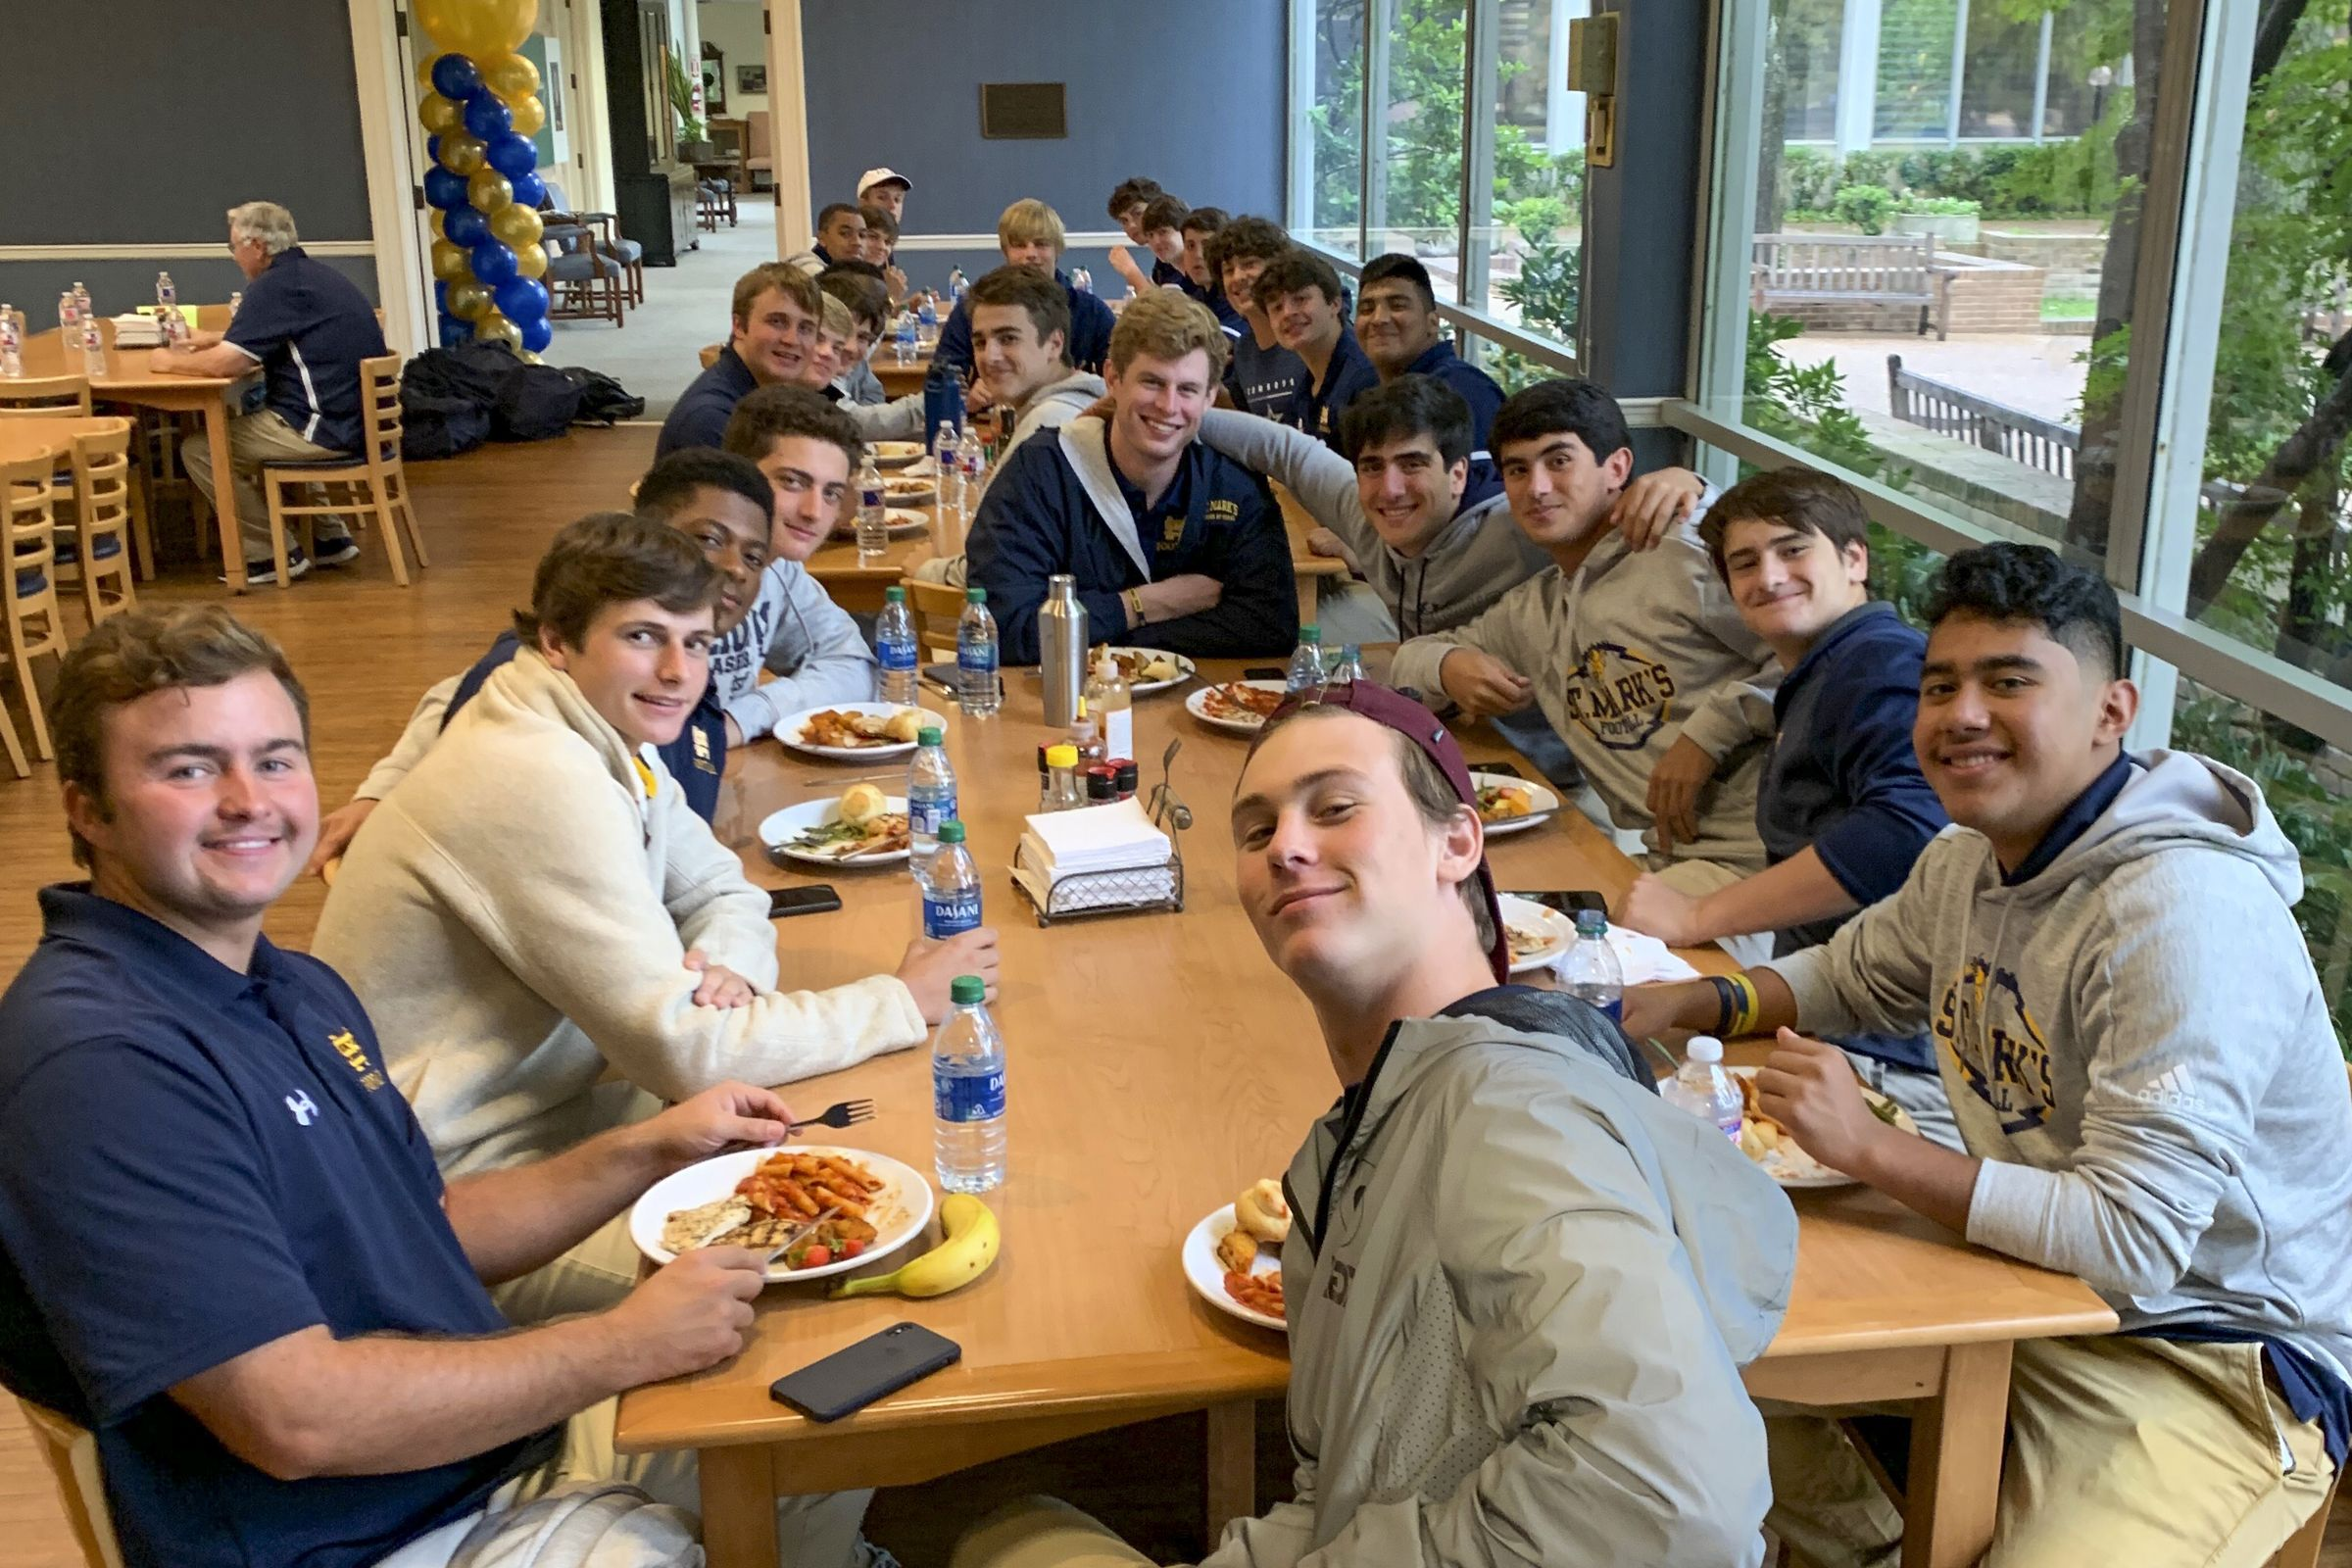 The Hockaday School hosts the varsity football team before their Homecoming game.